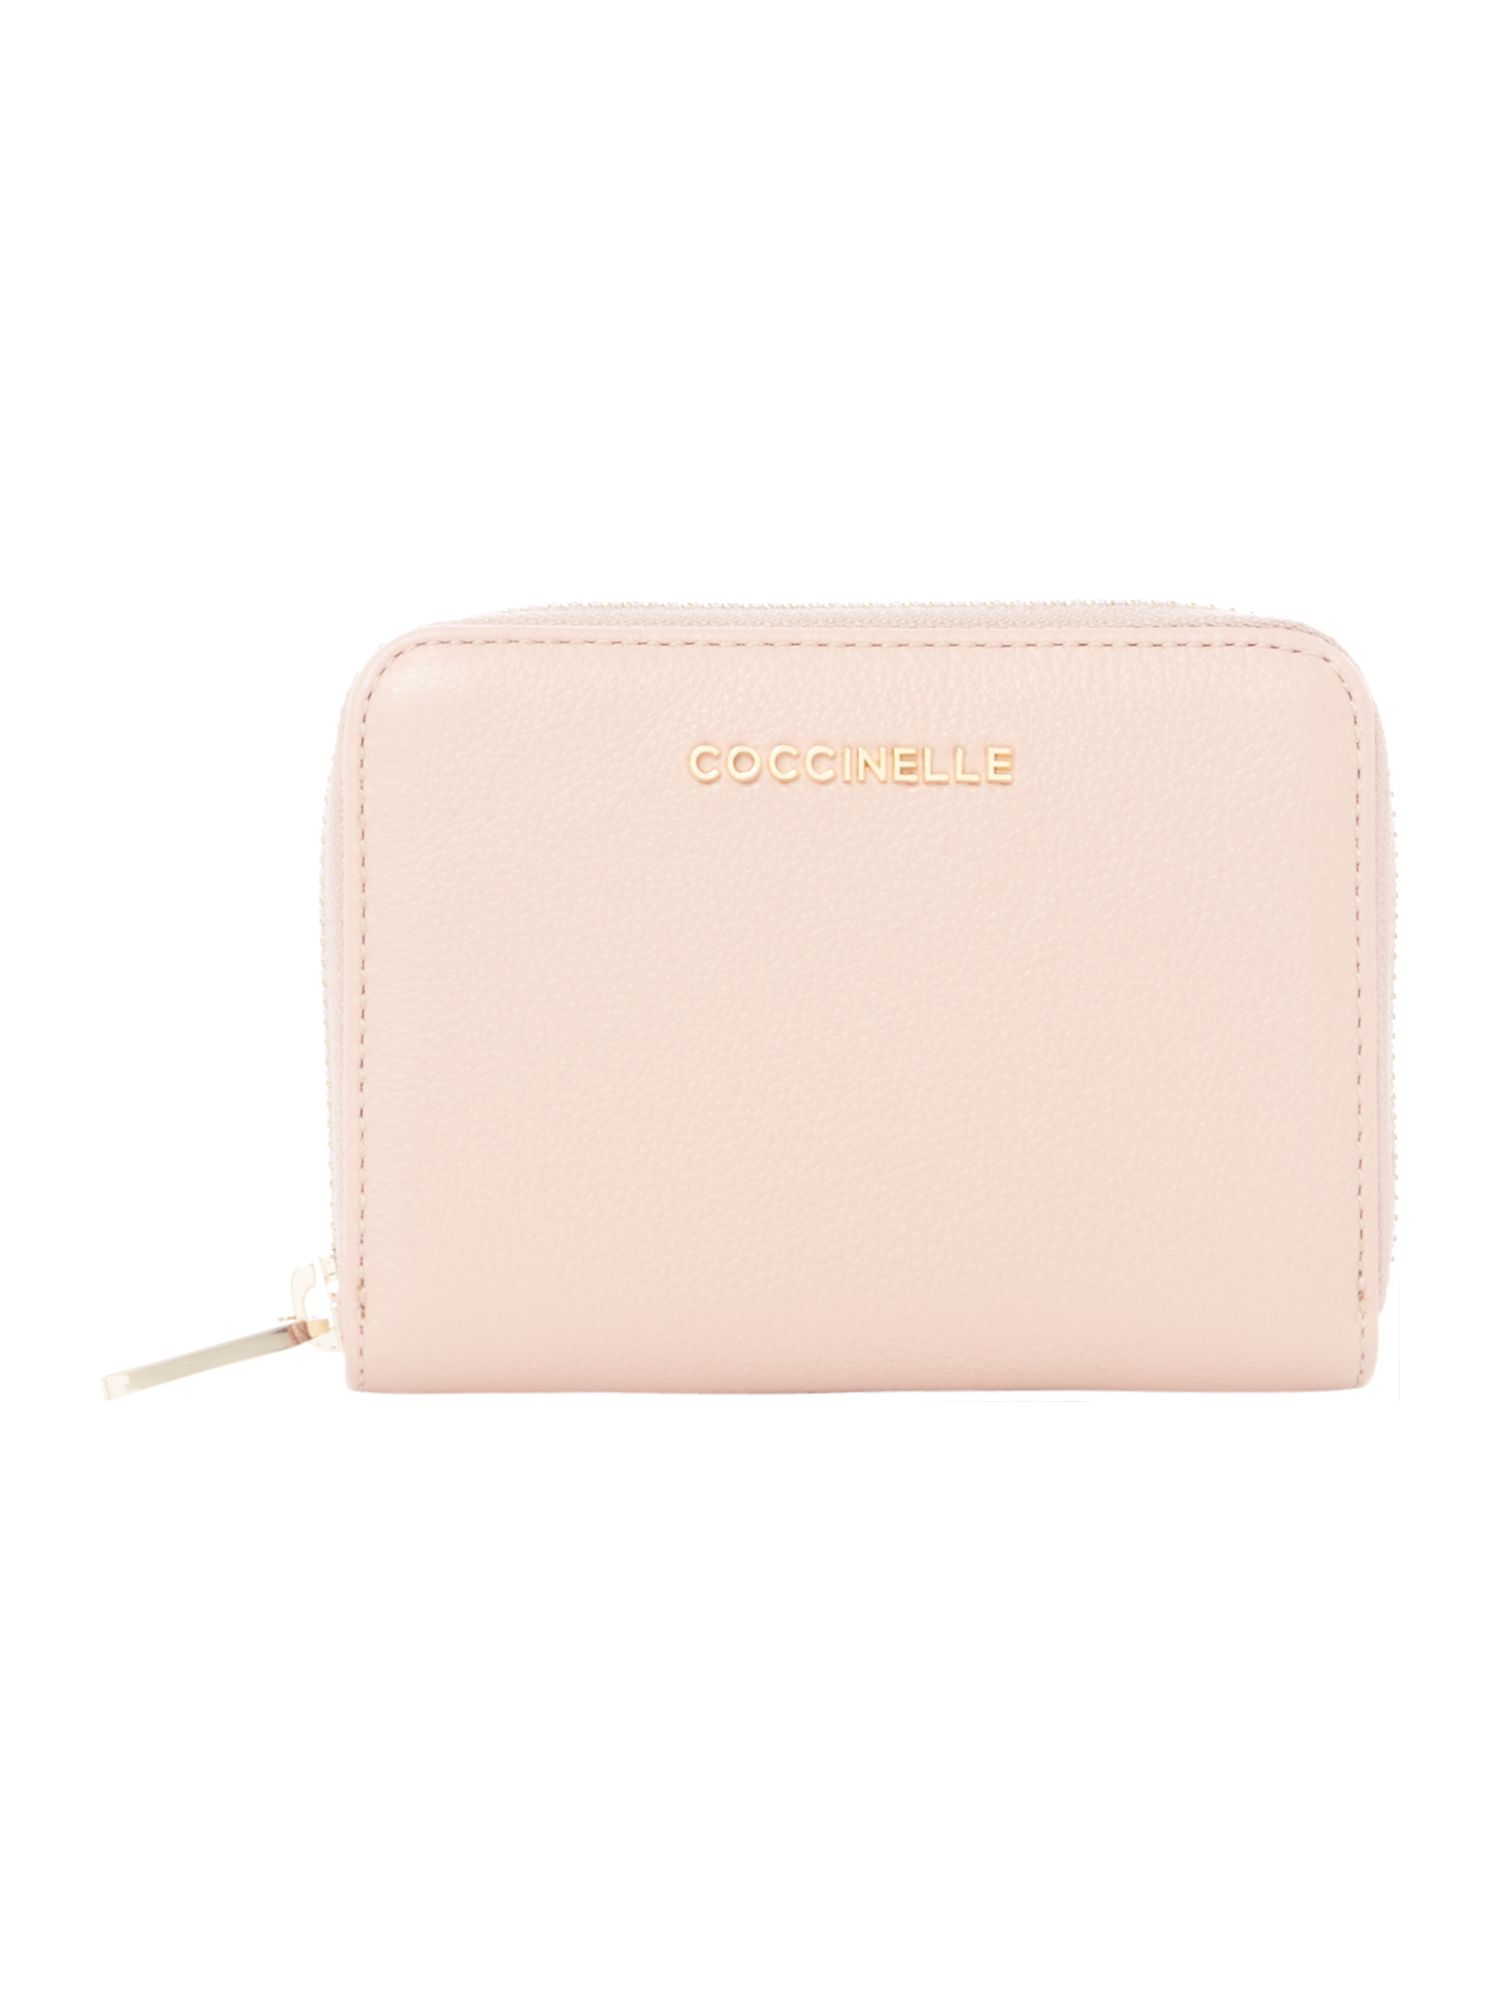 Coccinelle Metallic soft leather small zip around, Pink